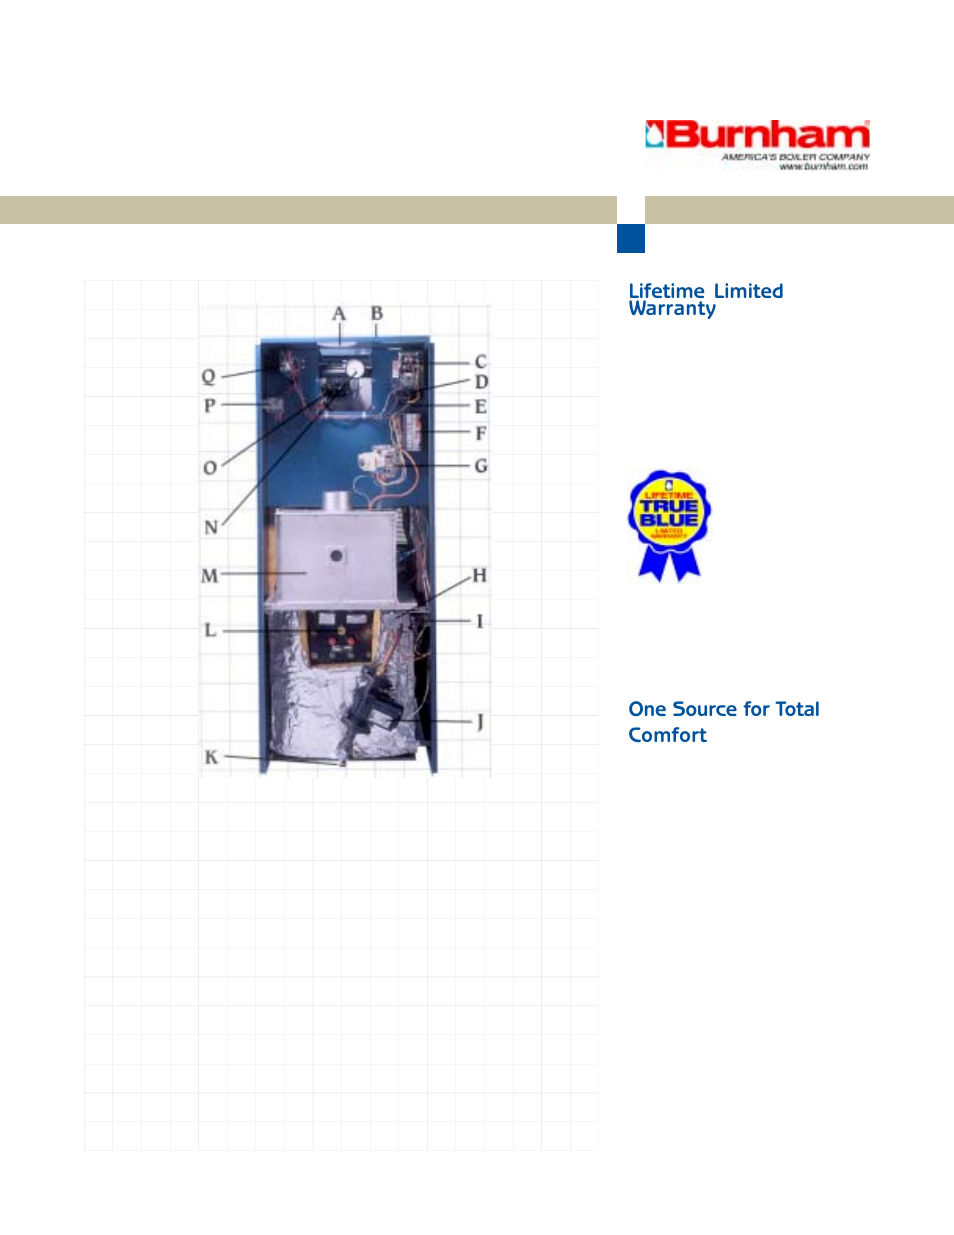 Lifetime Limited Warranty One Source For Total Comfort Burnham Gas Boiler Wiring Diagrams Minuteman Ii User Manual Page 4 6